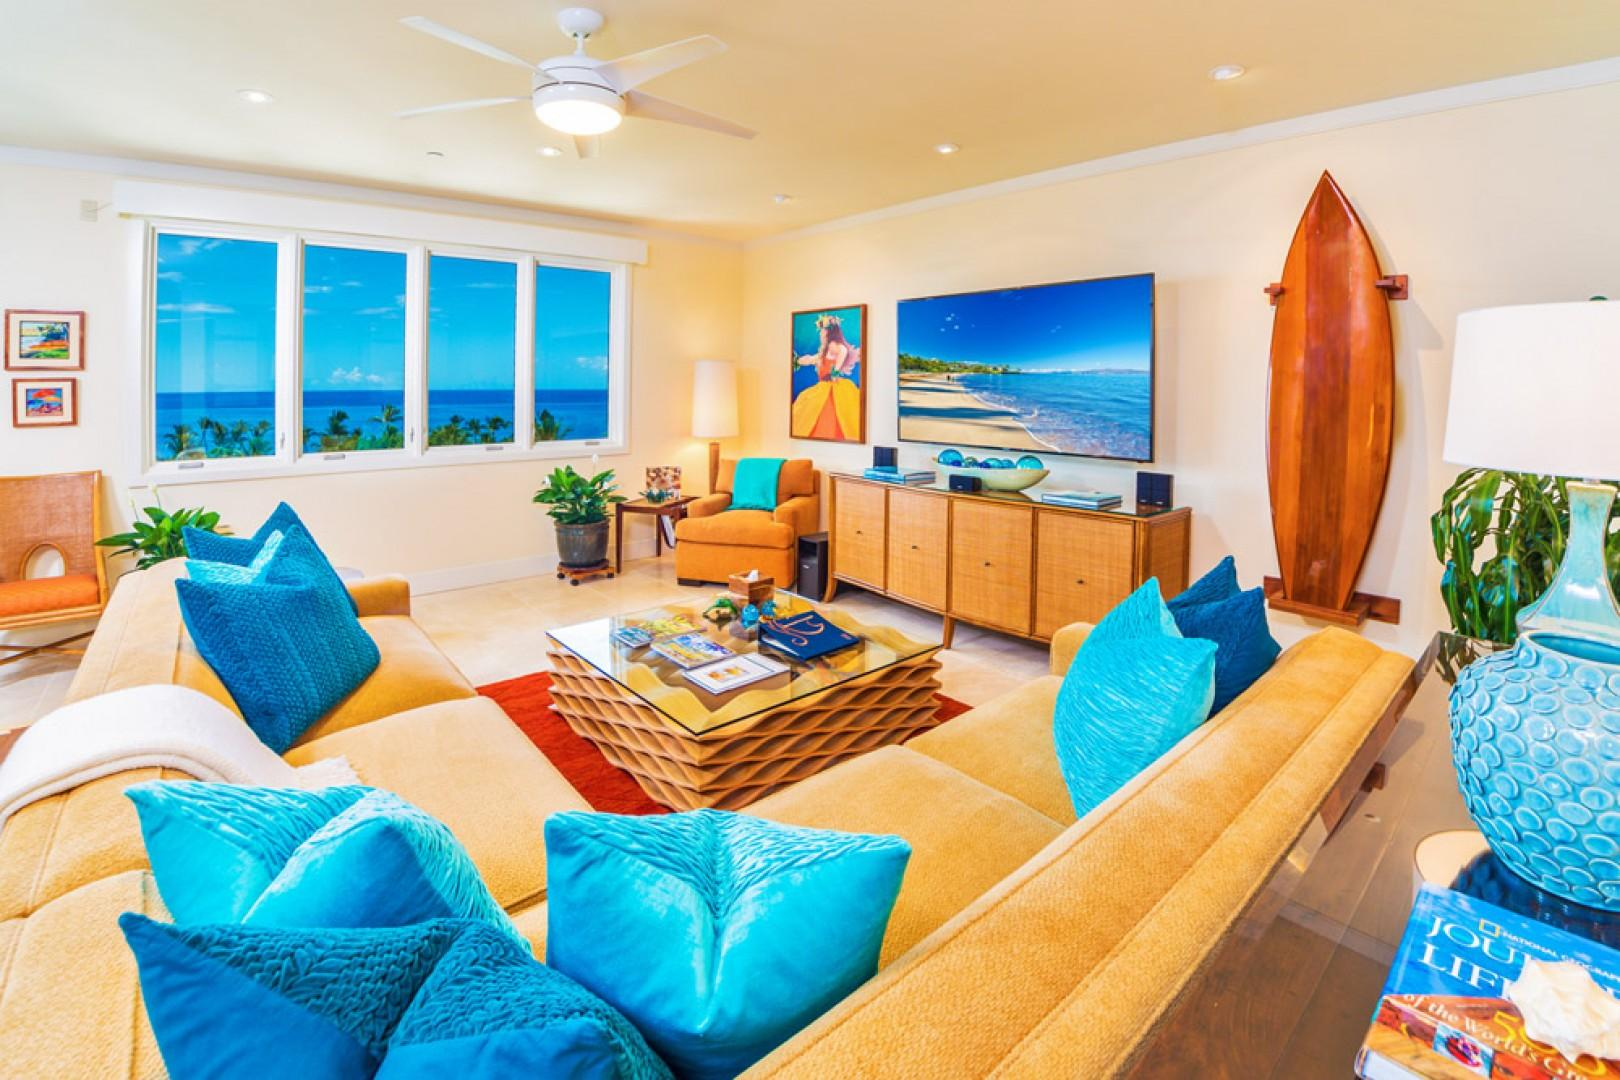 K507 Wailea Seashore Suite - The Stunningly Beautiful Great Room. Live Plants, Original Art, Hawaiiana Artifacts and Decor, 75